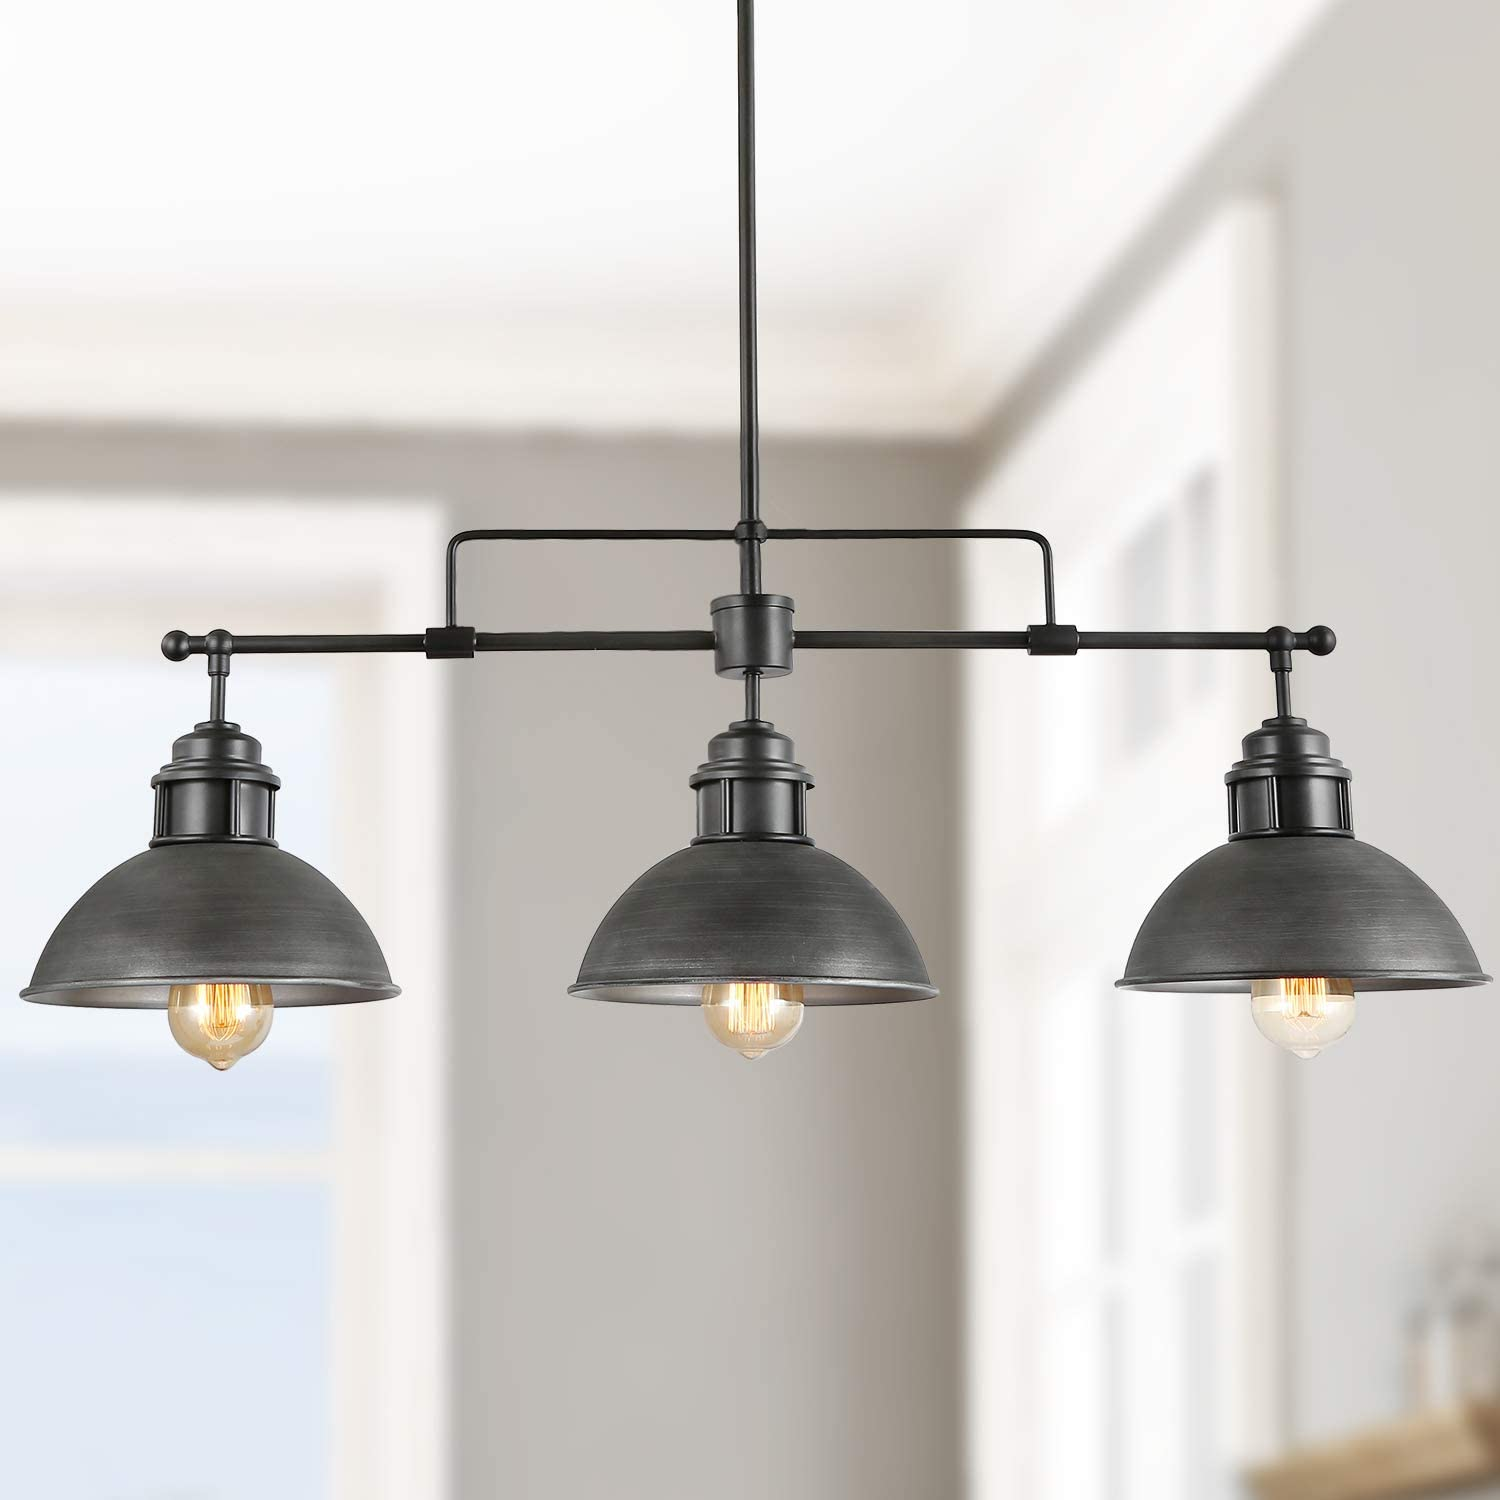 Log Barn Pendant Lighting For Kitchen Island Black Chandelier In Brushed Antique Dark Metal Finish Industrial Linear Ceiling Fixture Hanging For Dining Rooms Pool Tables Amazon Com